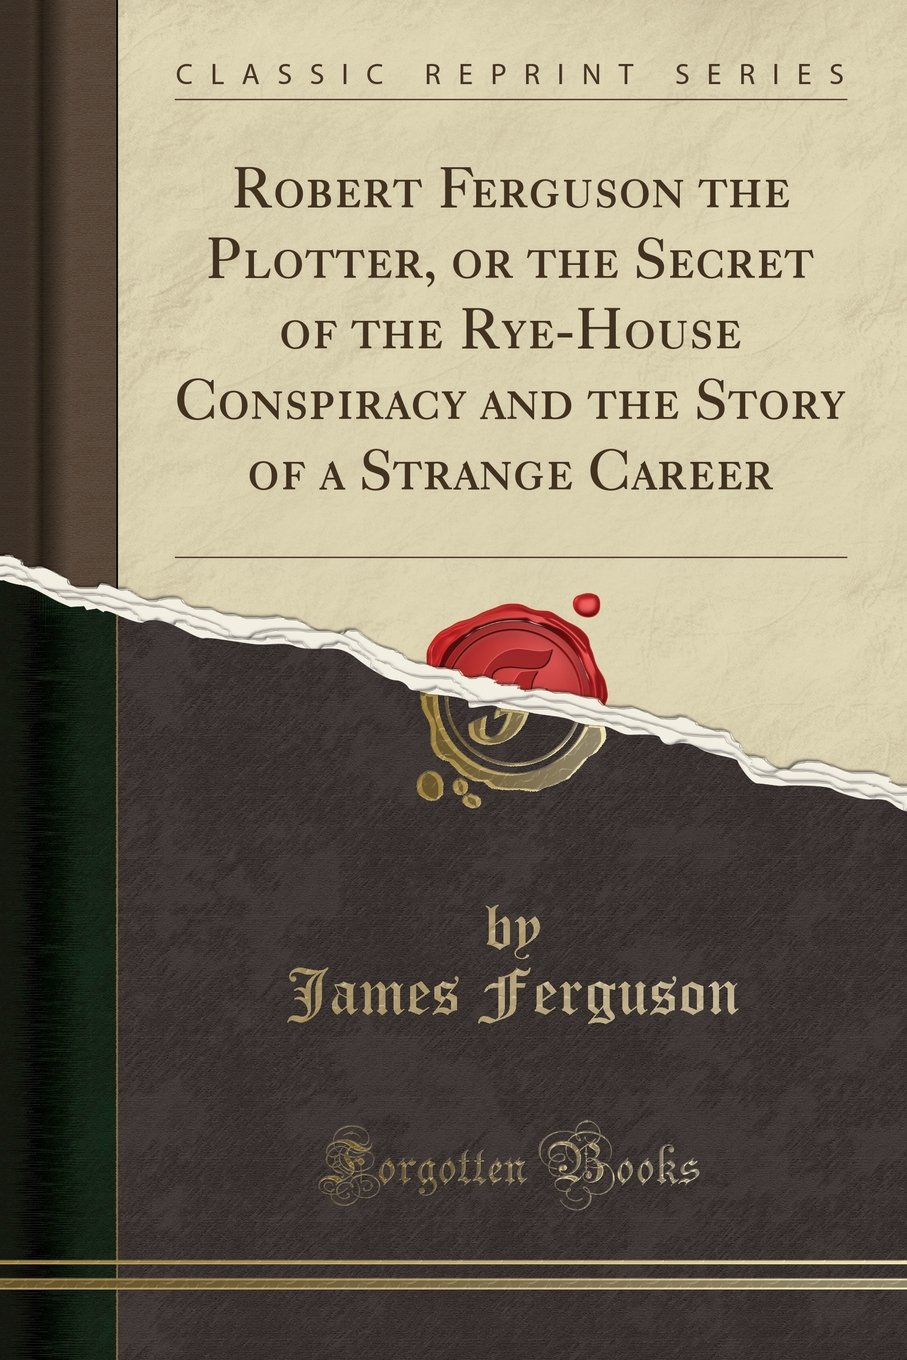 Robert Ferguson the Plotter, or the Secret of the Rye-House ...